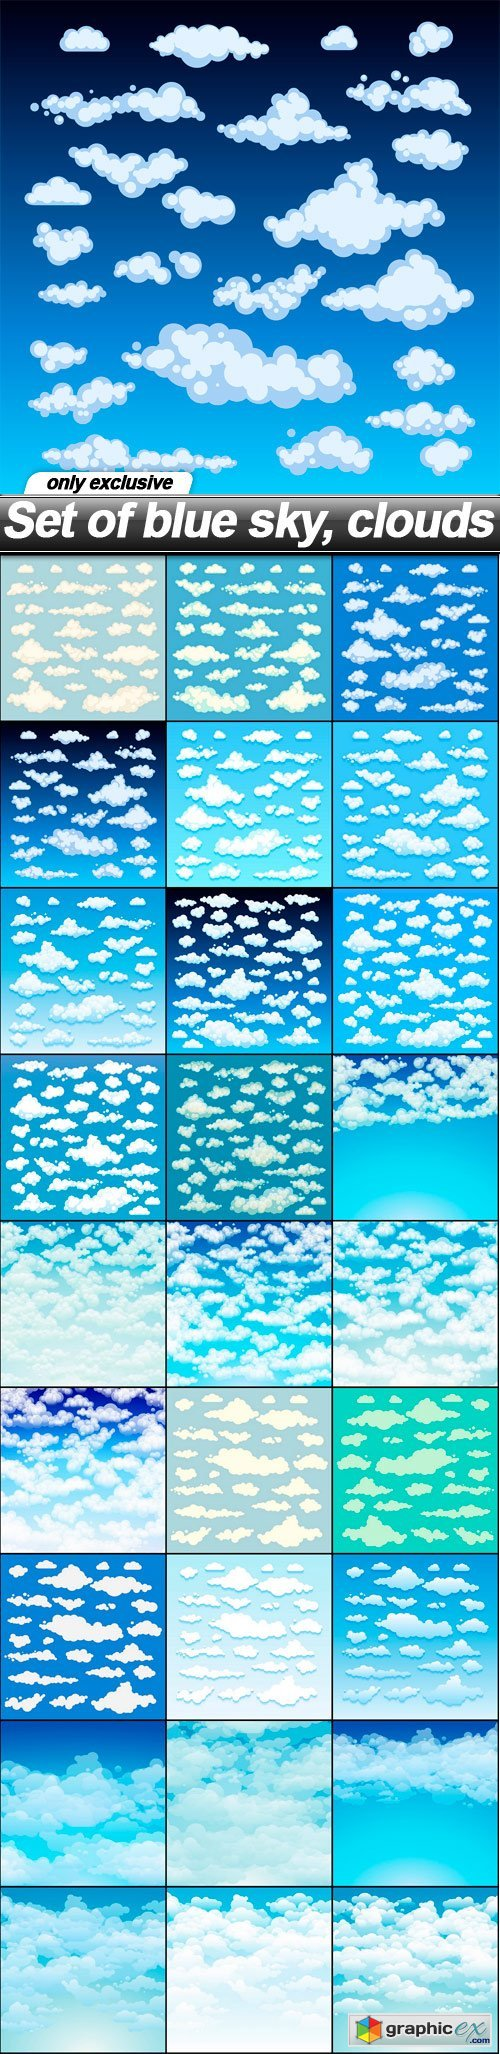 Set of blue sky, clouds - 27 EPS